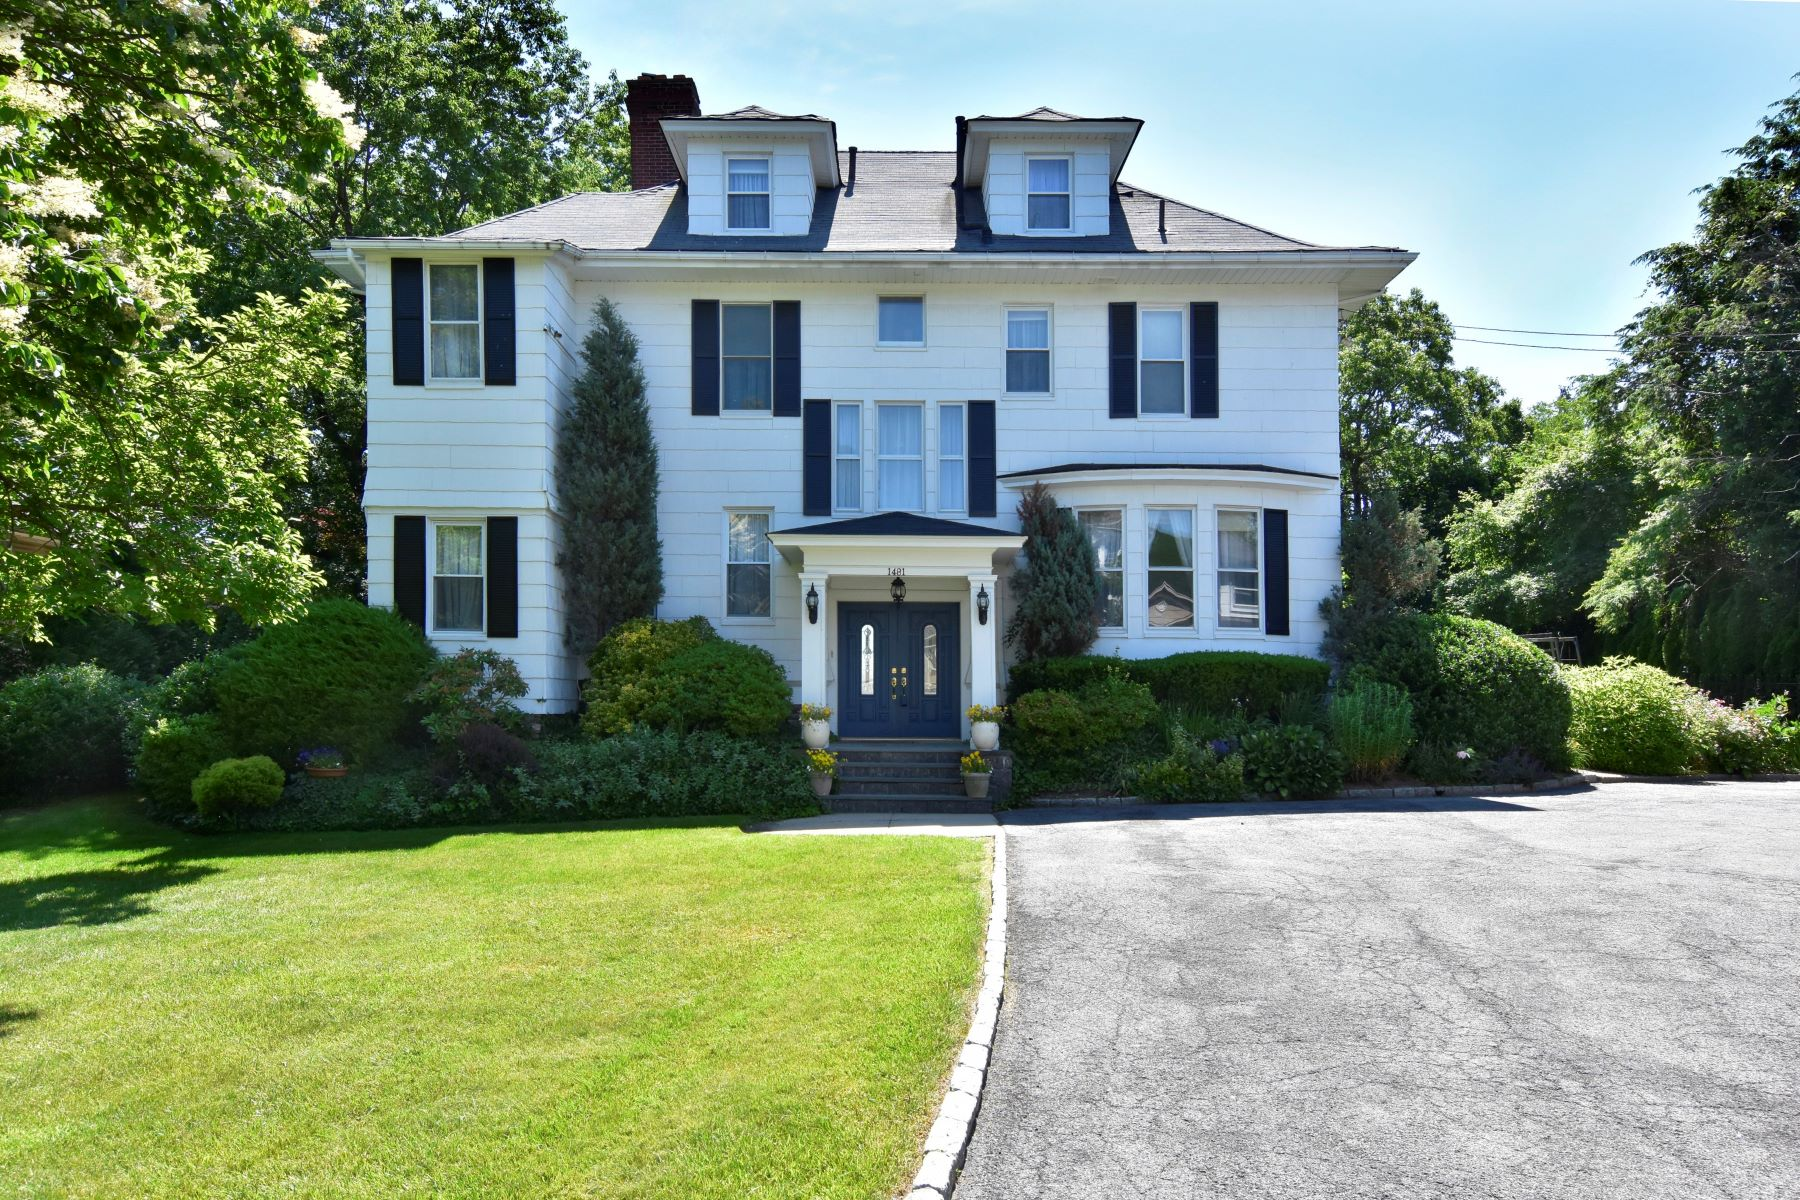 Single Family Home for Sale at Simply Spectacular 1481 Roosevelt Avenue Pelham, New York 10803 United States